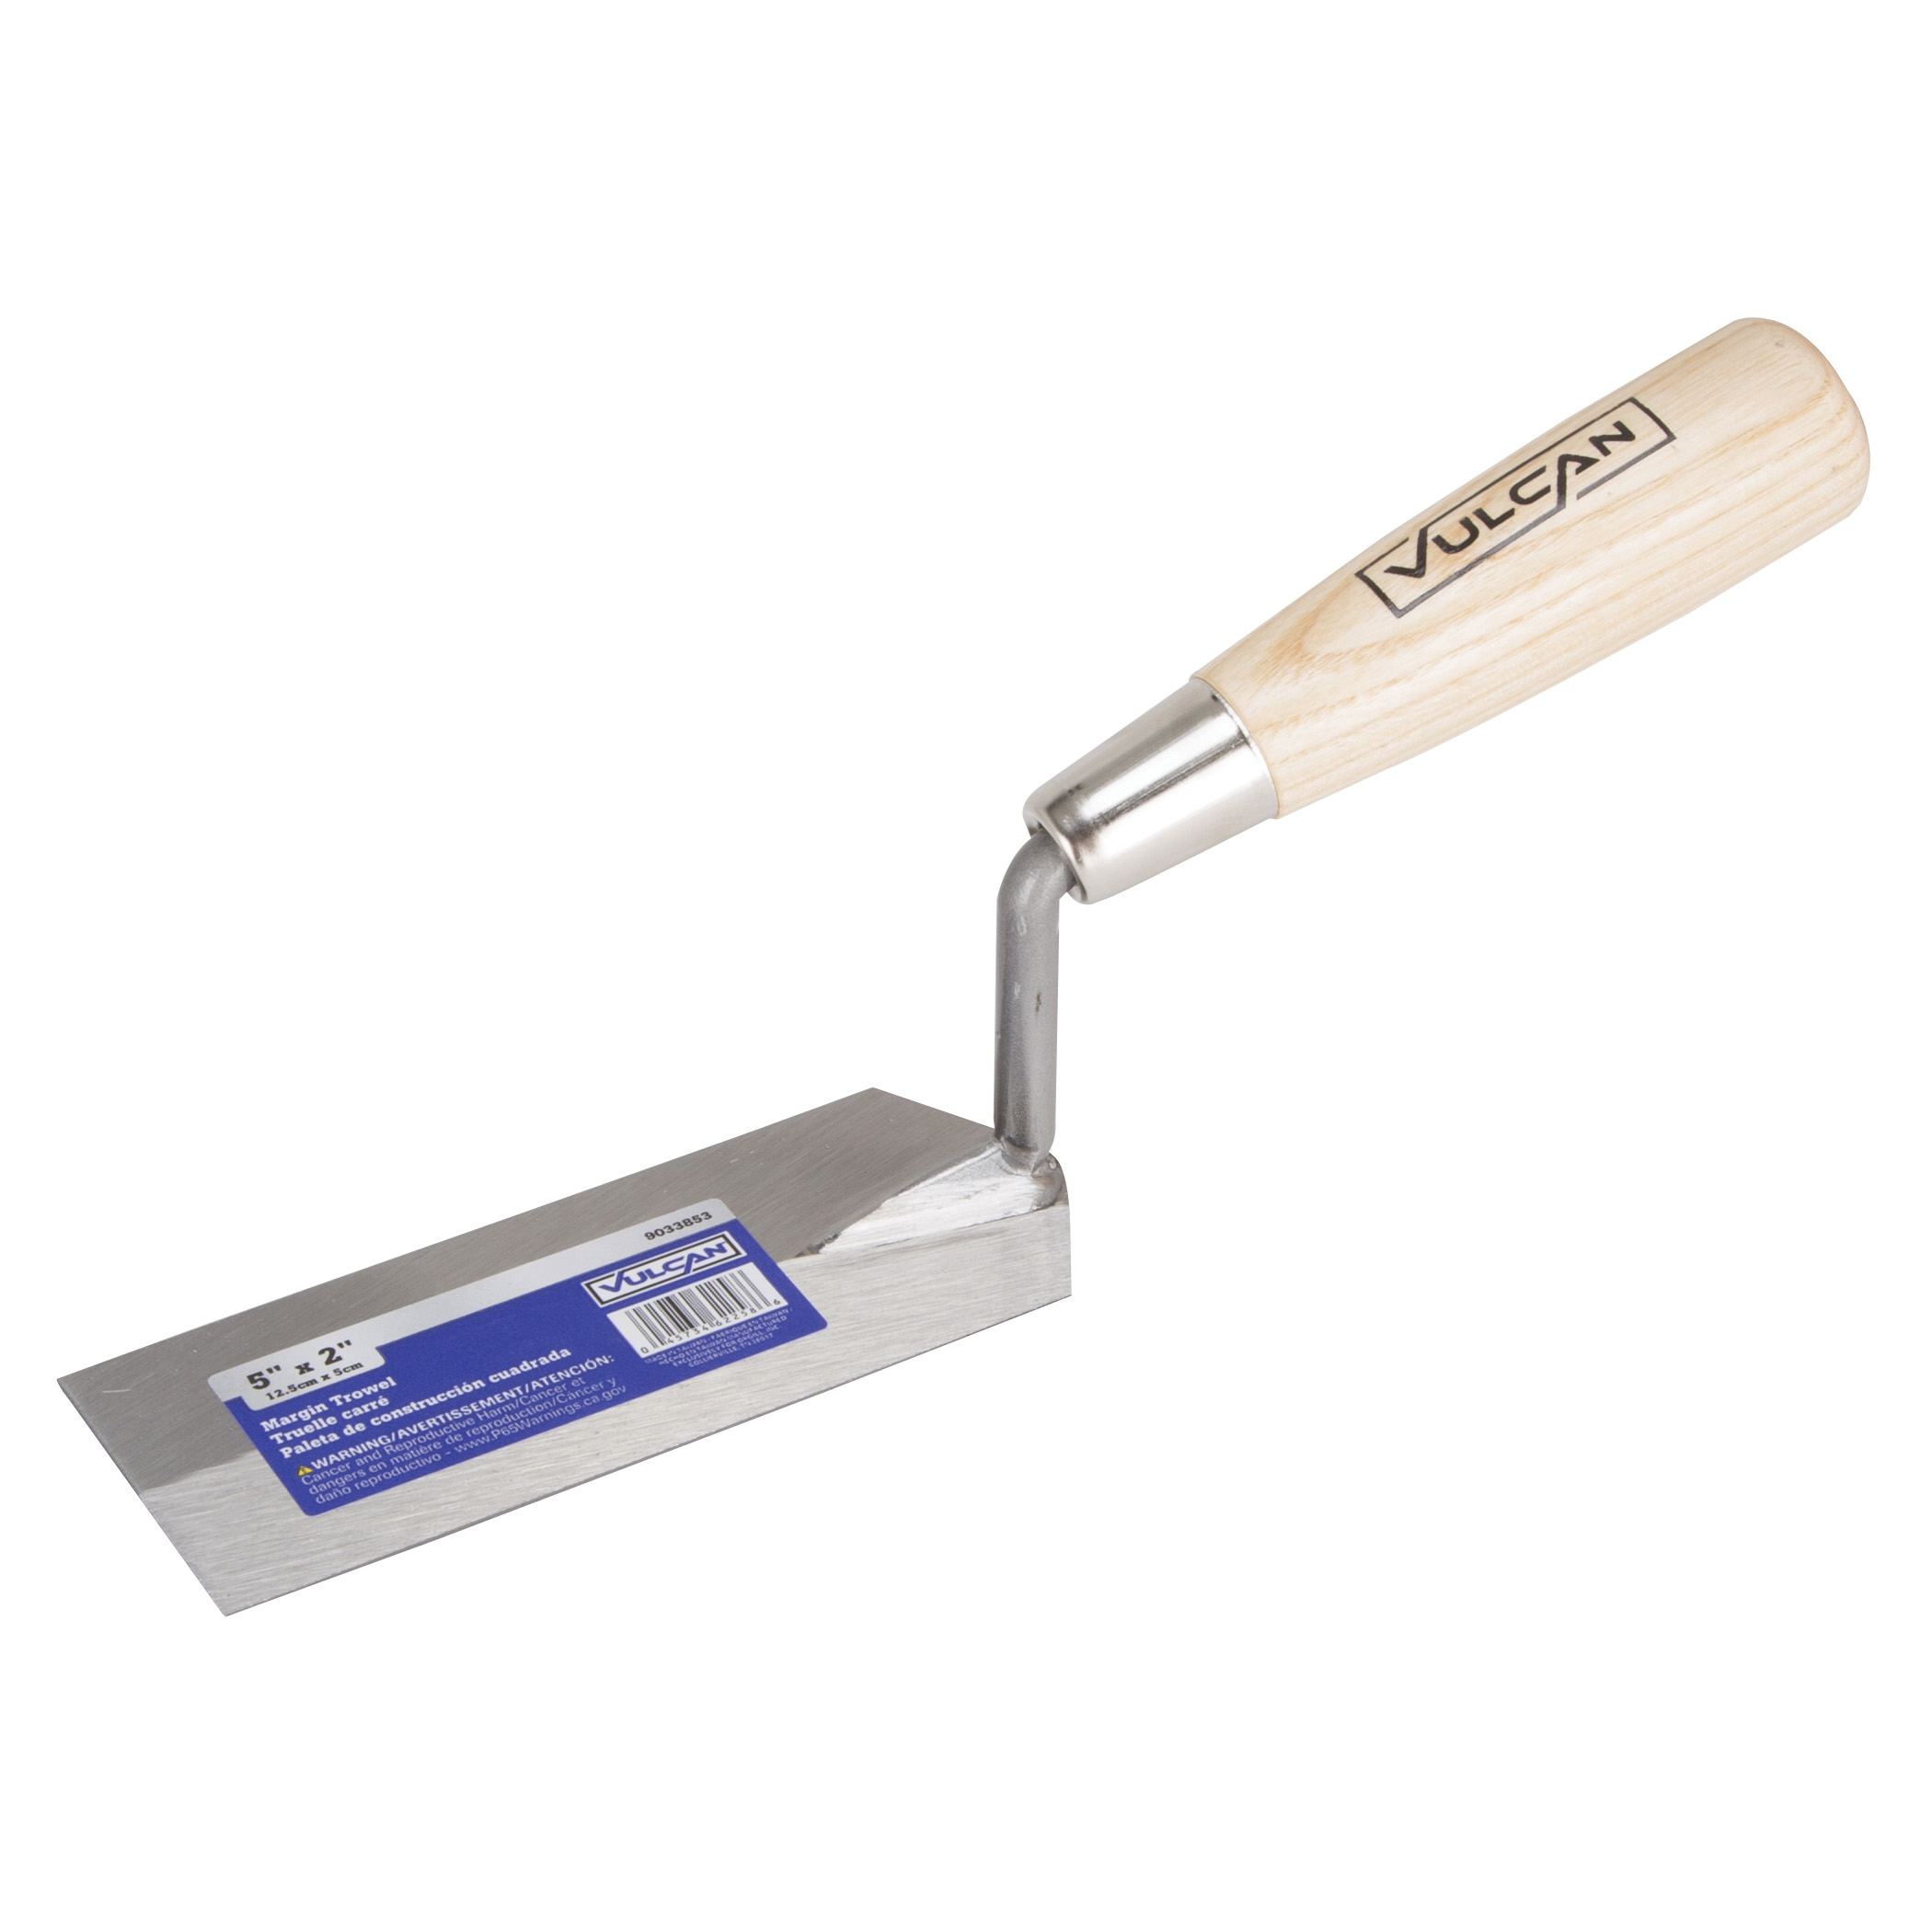 Picture of Vulcan 16405 Margin Trowel, 5 in L Blade, 2 in W Blade, Carbon Steel Blade, Plastic Handle